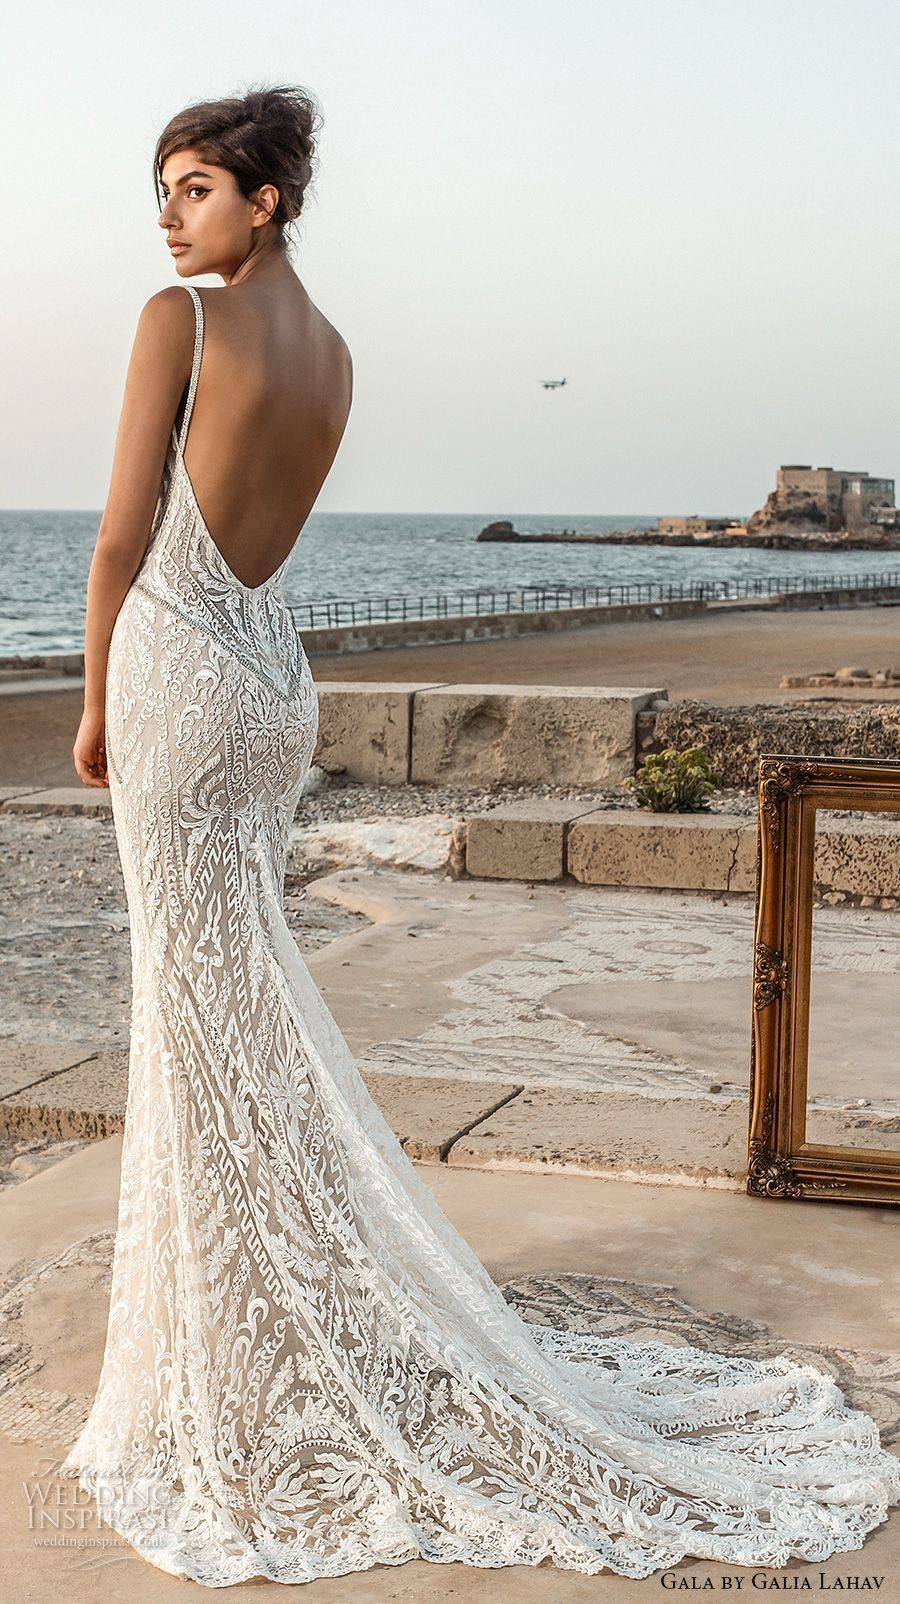 Beach wedding dresses mermaid style  Pin by Simone Brown on I guess every girl dreams of weddings